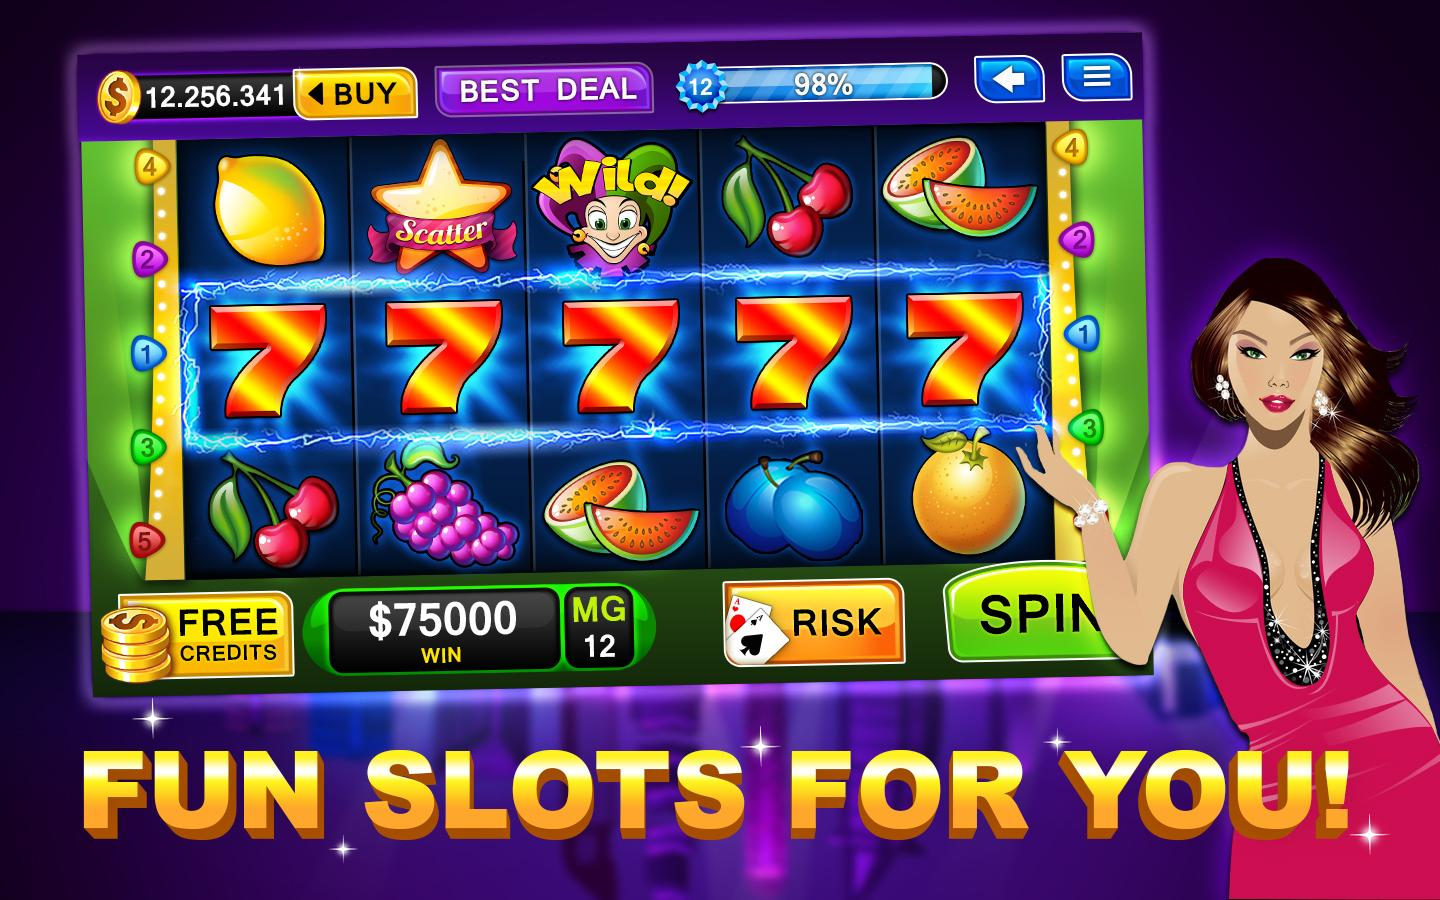 Why Play Our Free Slot Games?